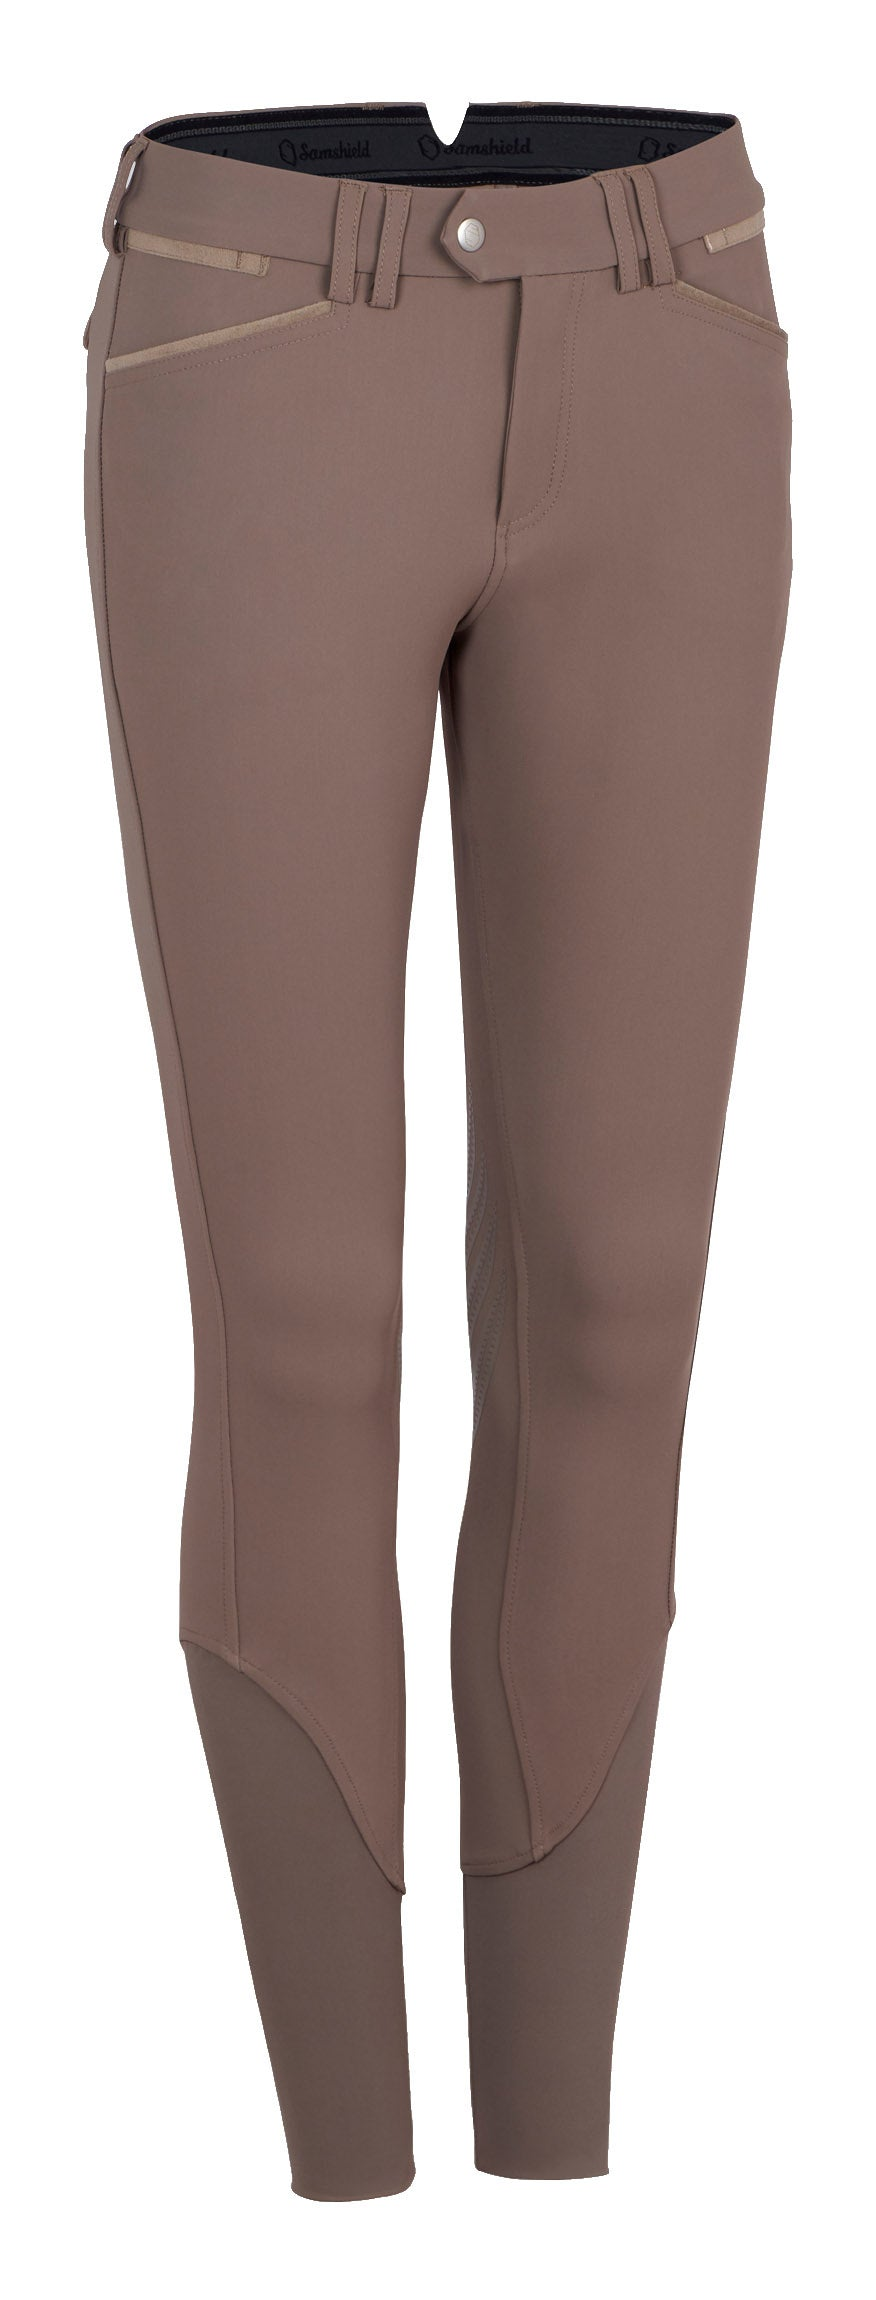 Shop Samshield Mathilde Breech | Shop Samshield Brand Products – Malvern Saddlery. - Malvern Saddlery